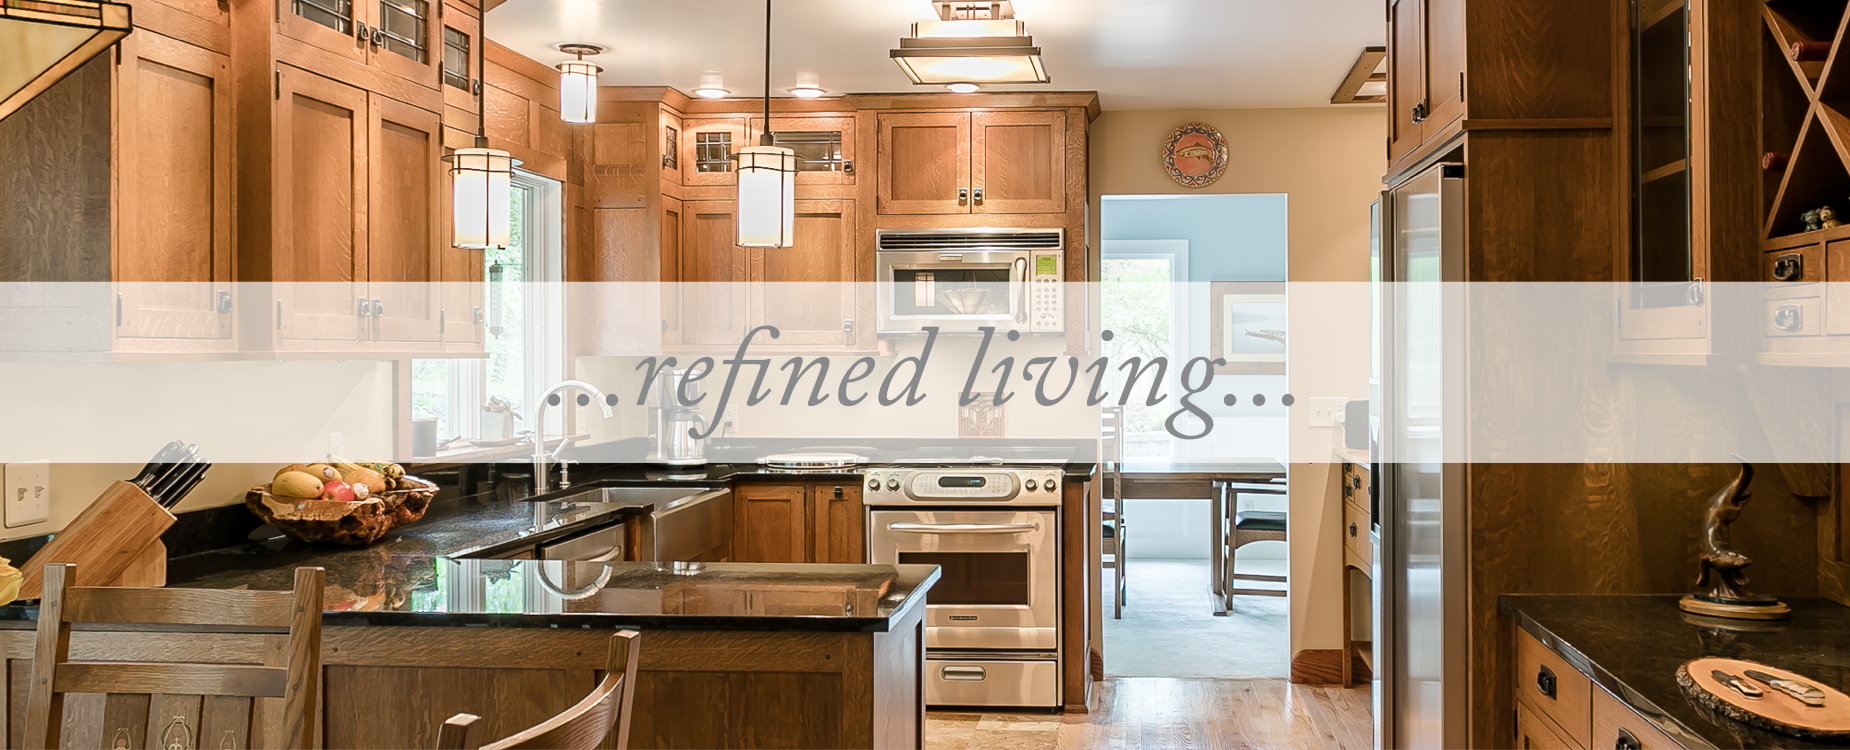 refined living